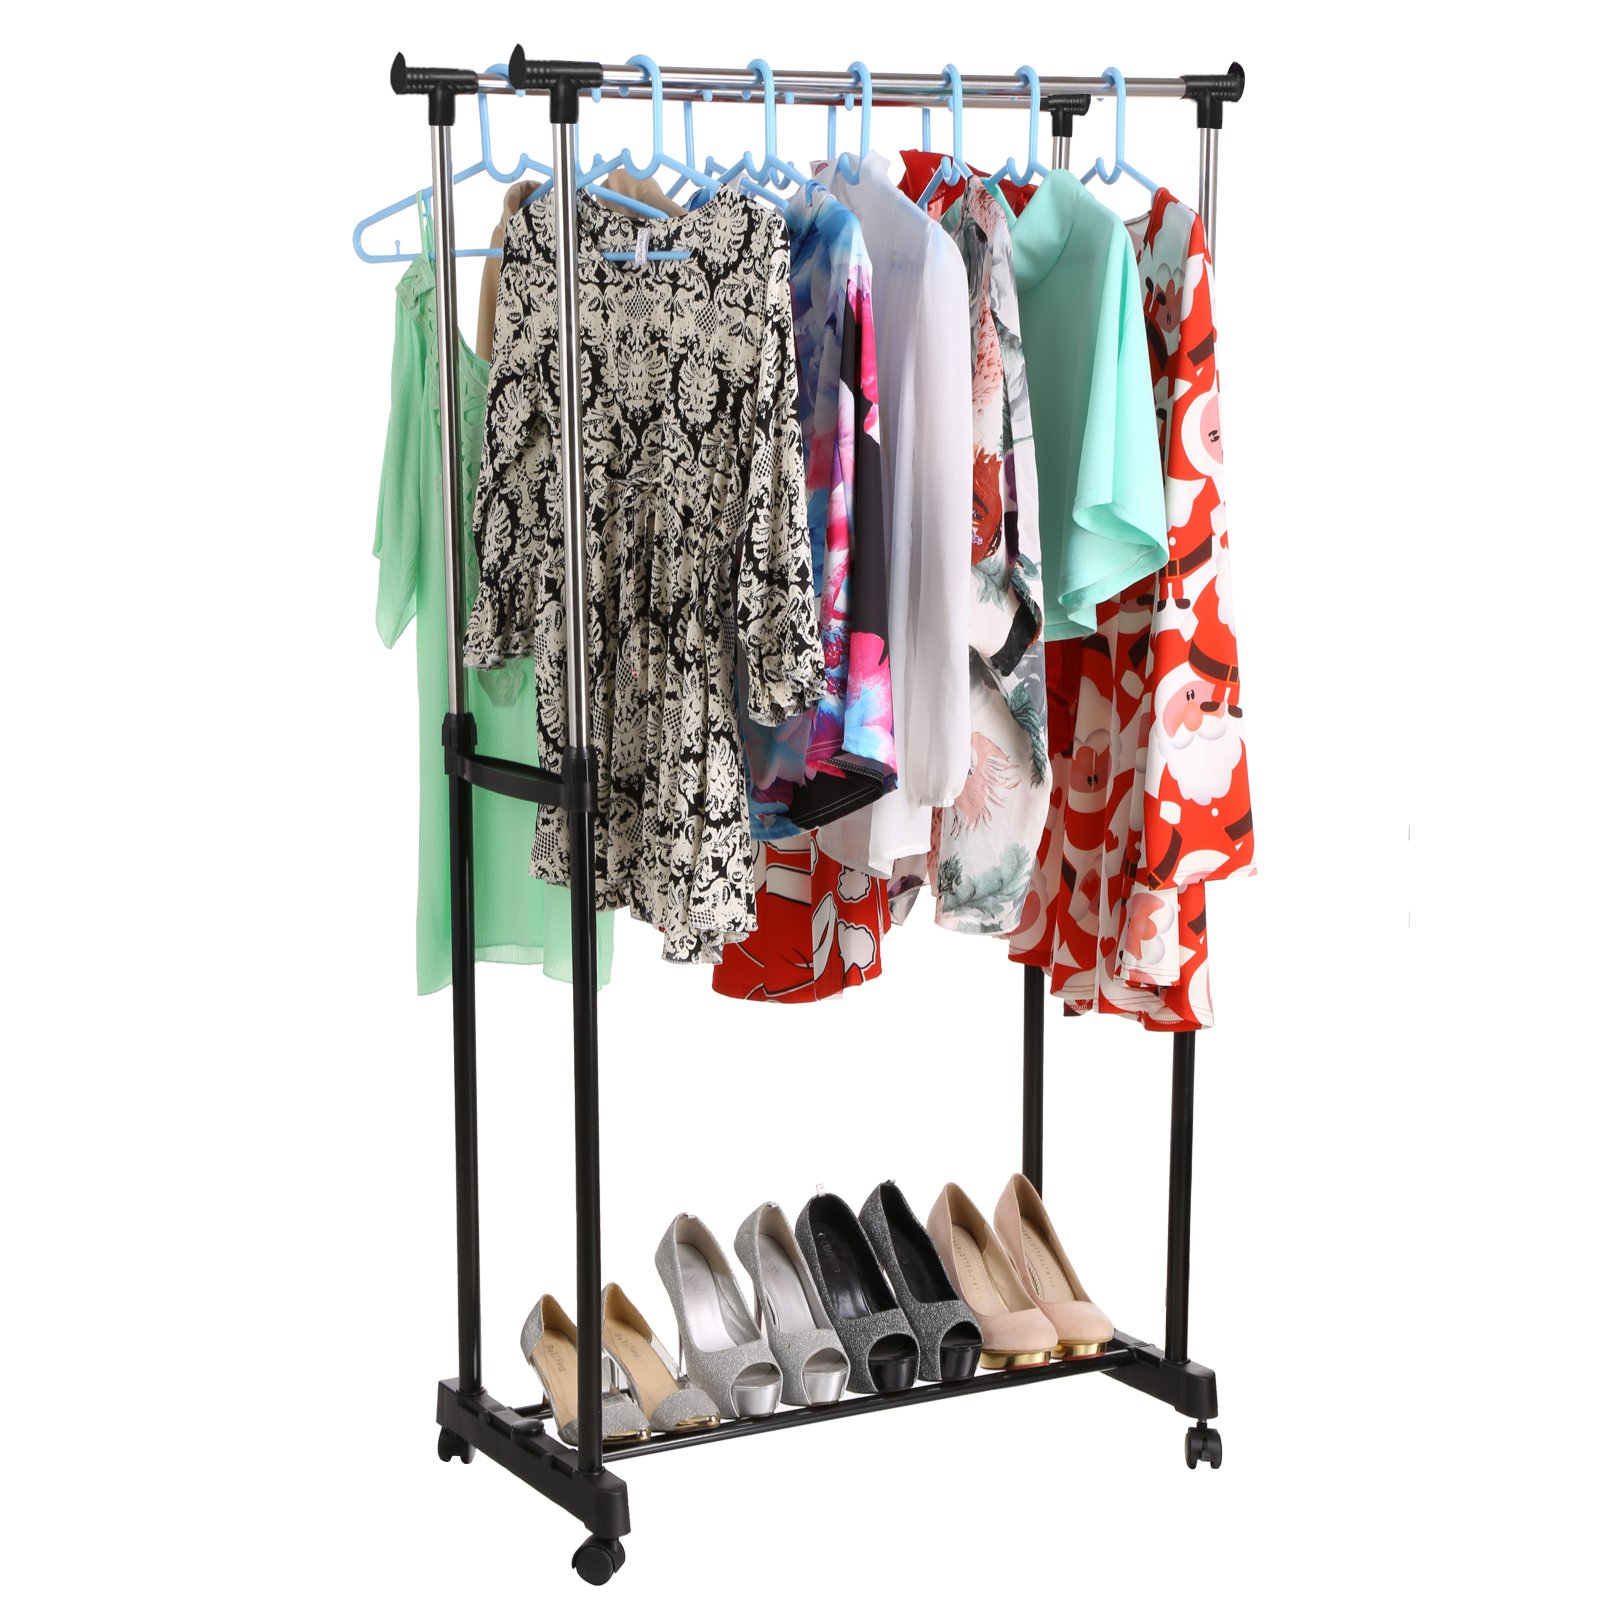 homdox clothes drying rack heavy duty double pole rail. Black Bedroom Furniture Sets. Home Design Ideas